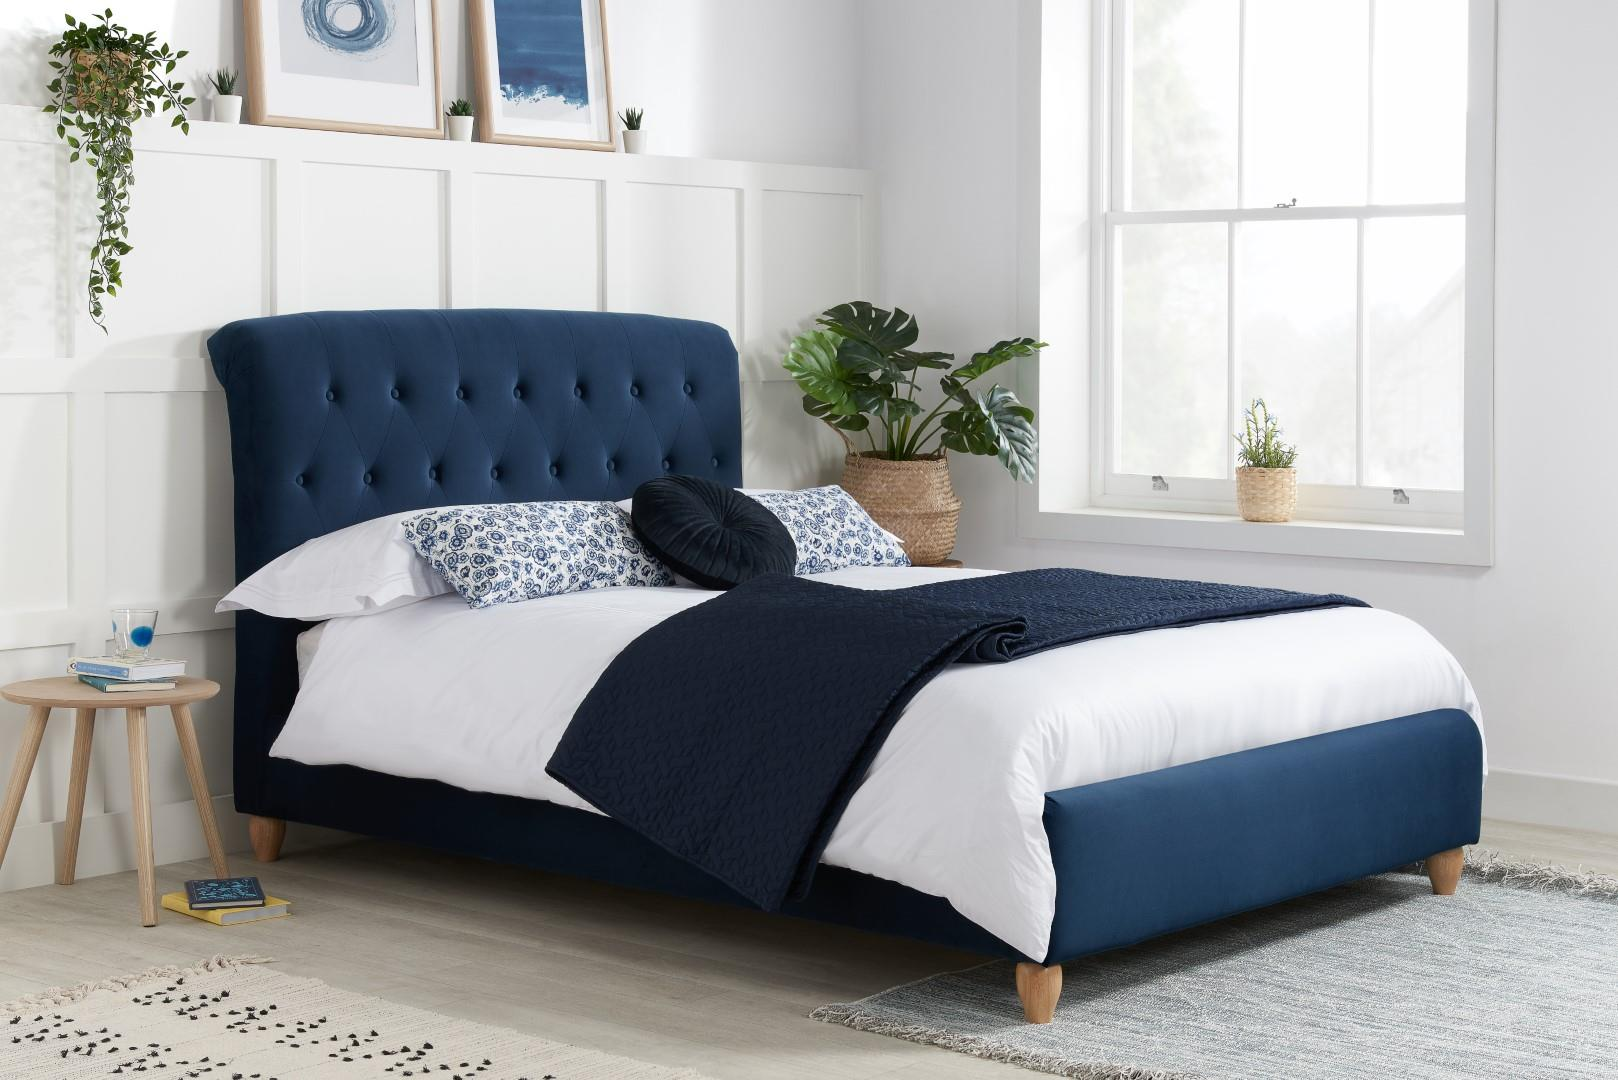 Brompton Upholstered Headboard Bed Frame 120cm 4FT Blue Wood Fabric Small Double